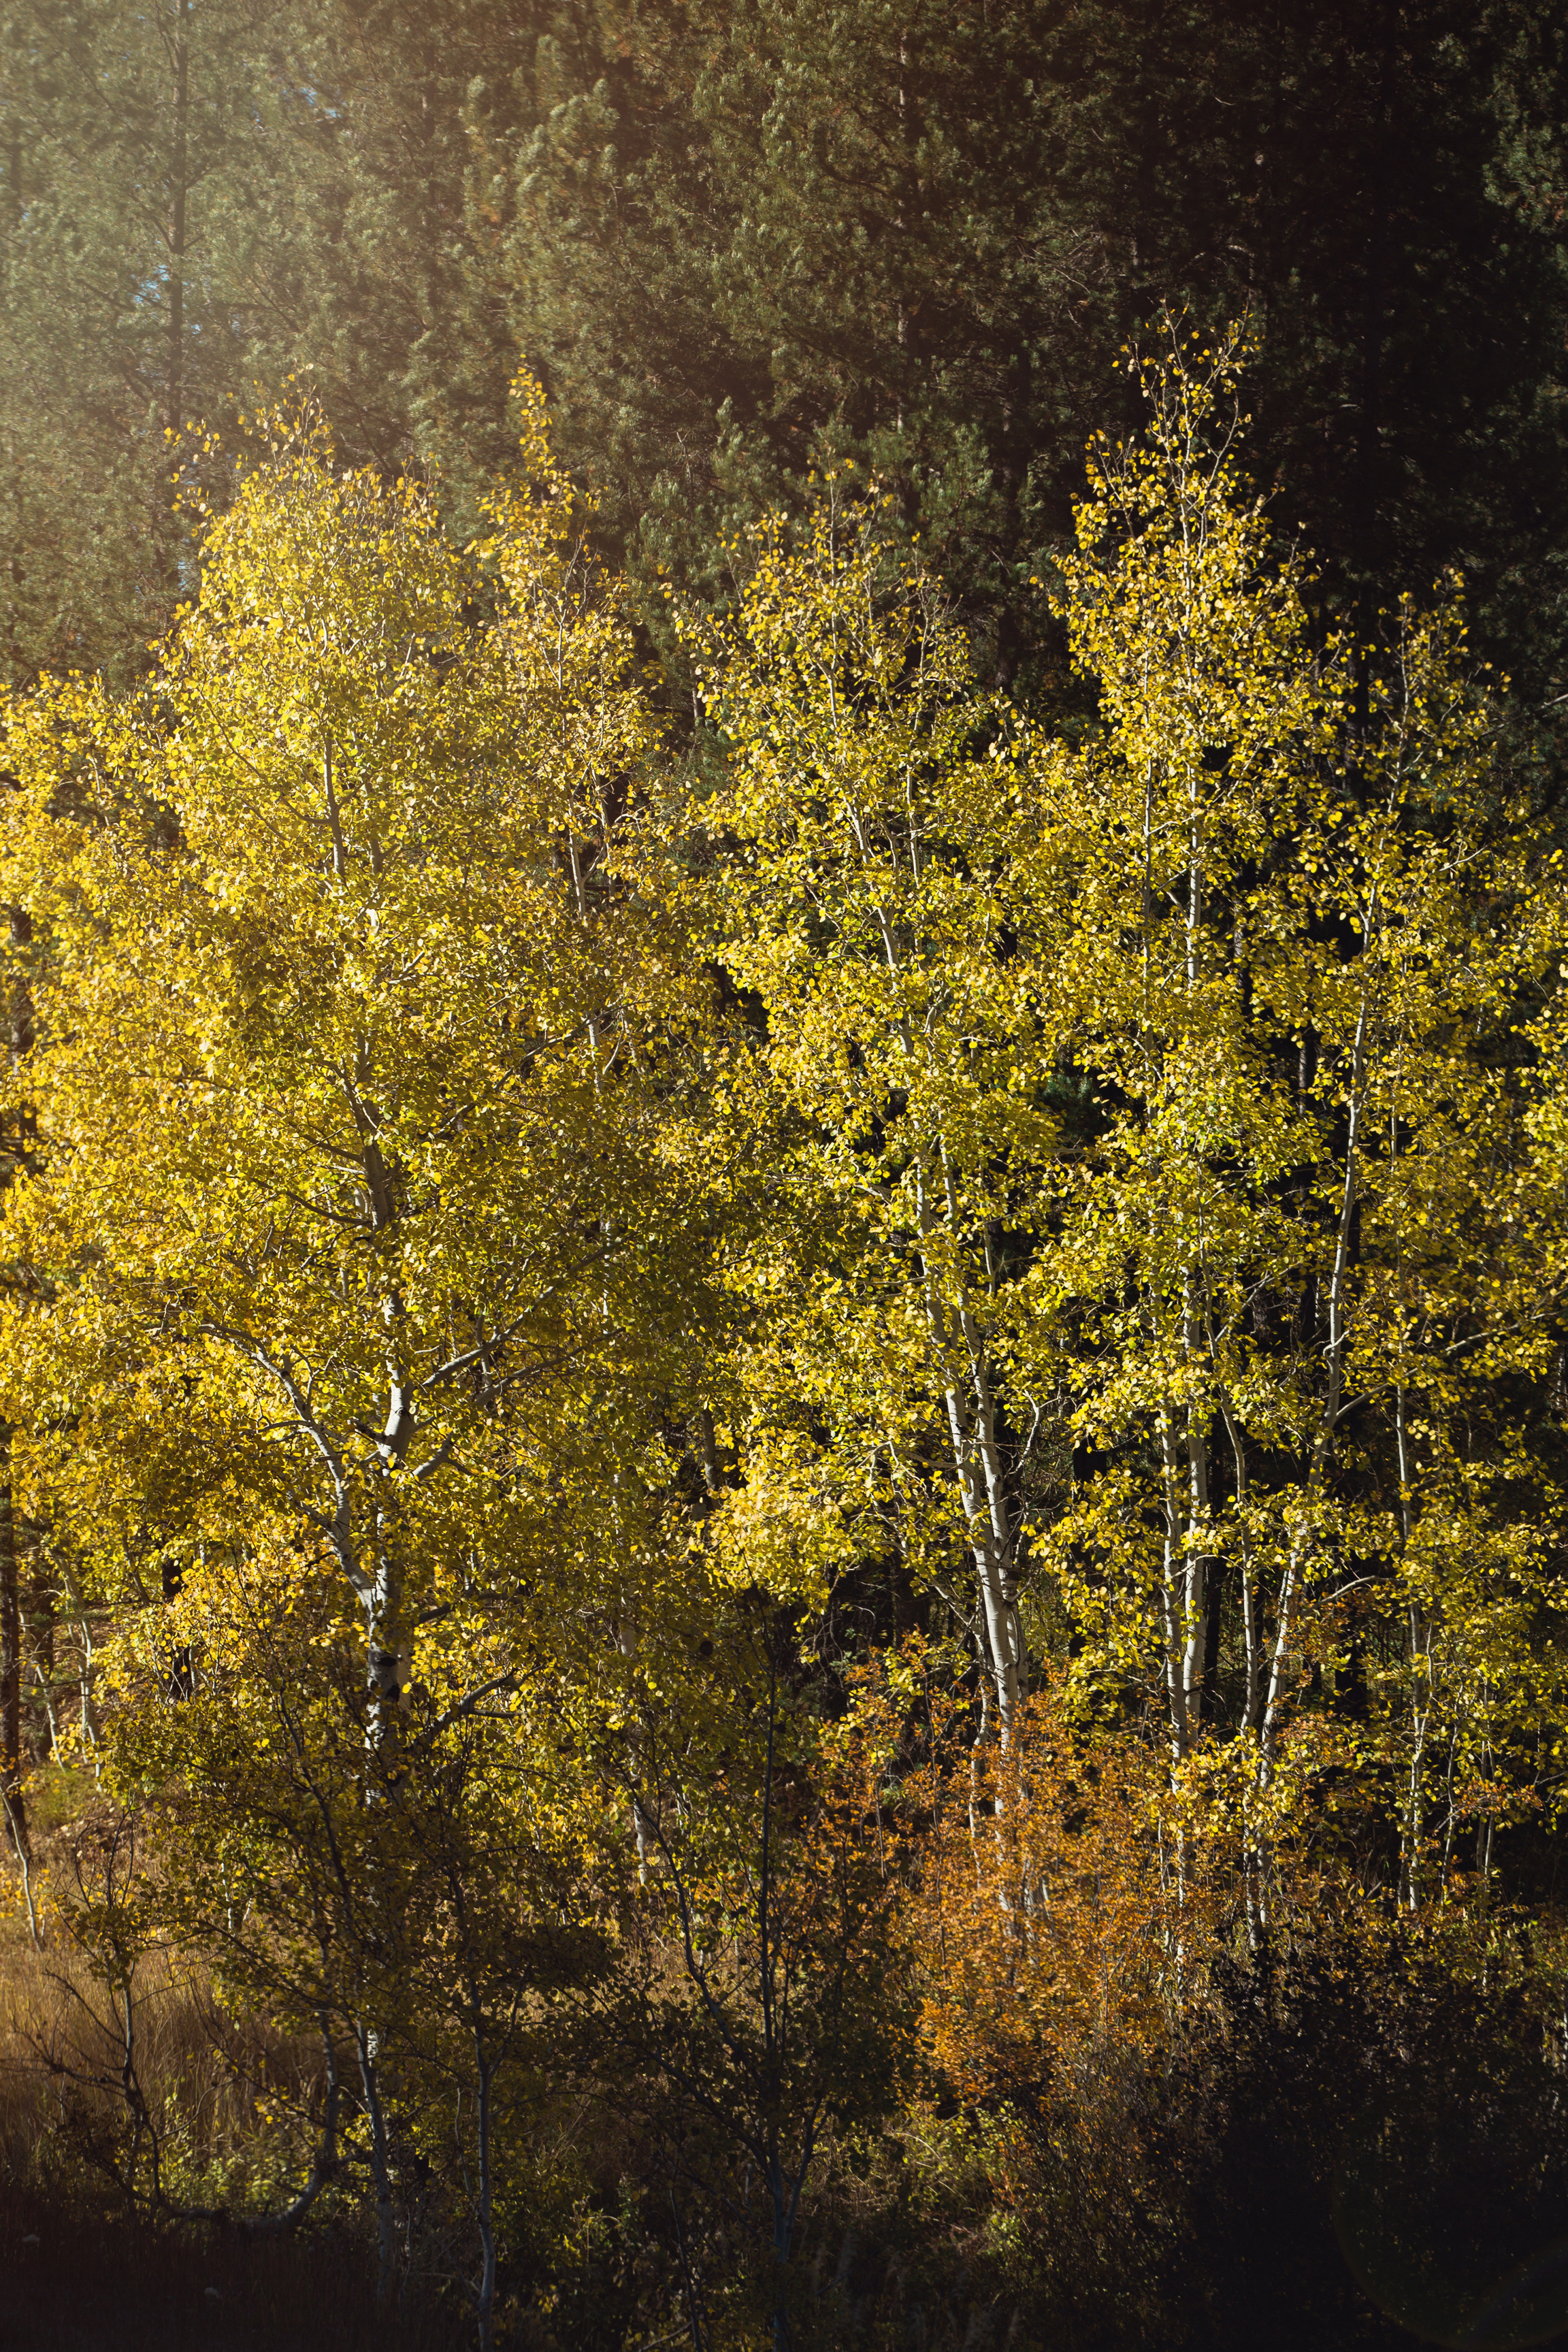 Cindy_Giovagnoli_Idaho_Wyoming_Grand_Teton_National_Park_autumn_aspens_camping_mountains-019.jpg